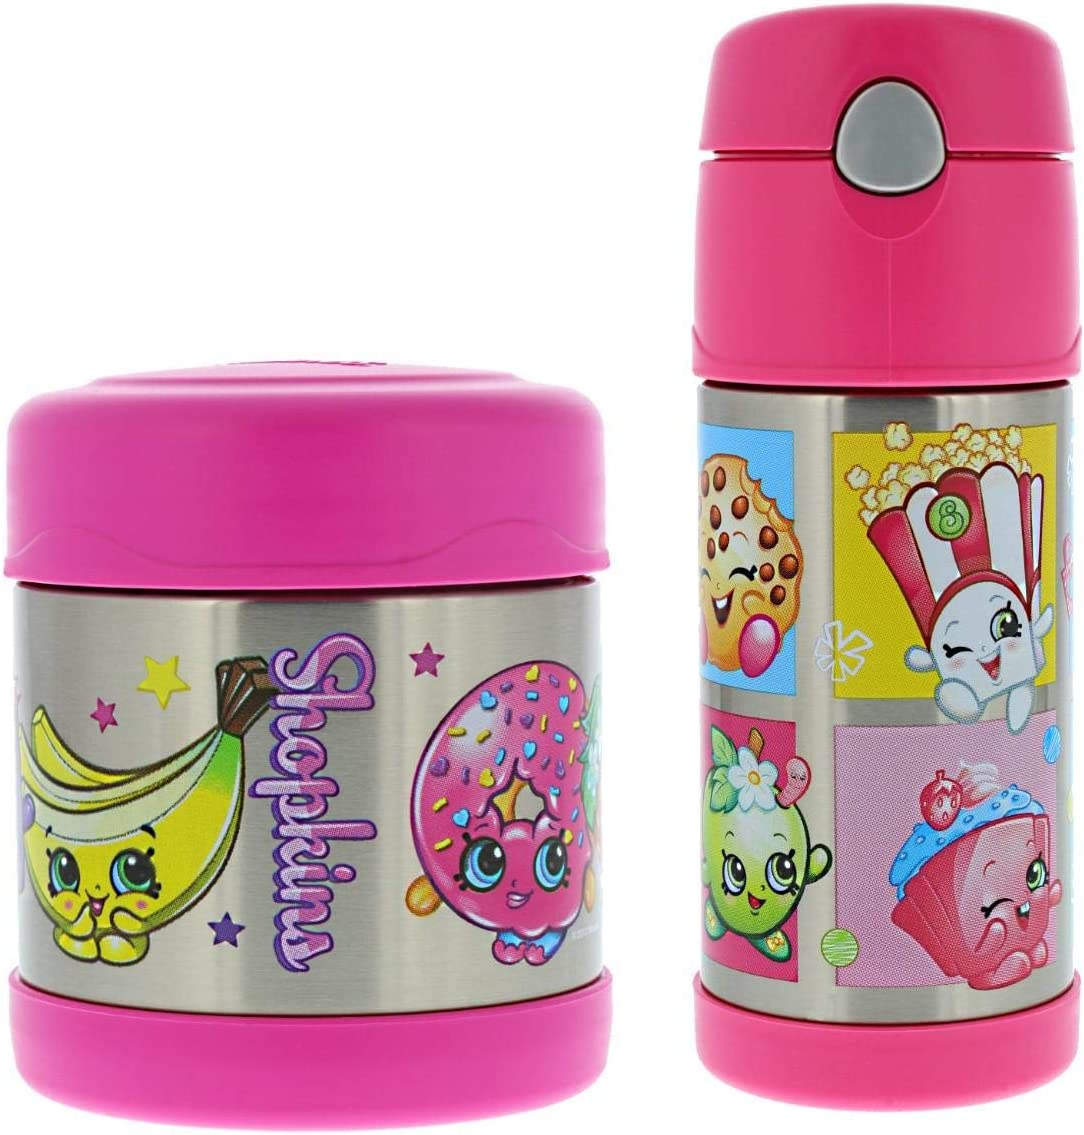 Thermos FUNtainer Vacuum Insulated Stainless Steel 10oz Food Jar & 12oz Water Bottle w/Straw Set - Tasteless and Odorless, BPA-Free, Great for Children, Lunchbag, Travel-Shopkins